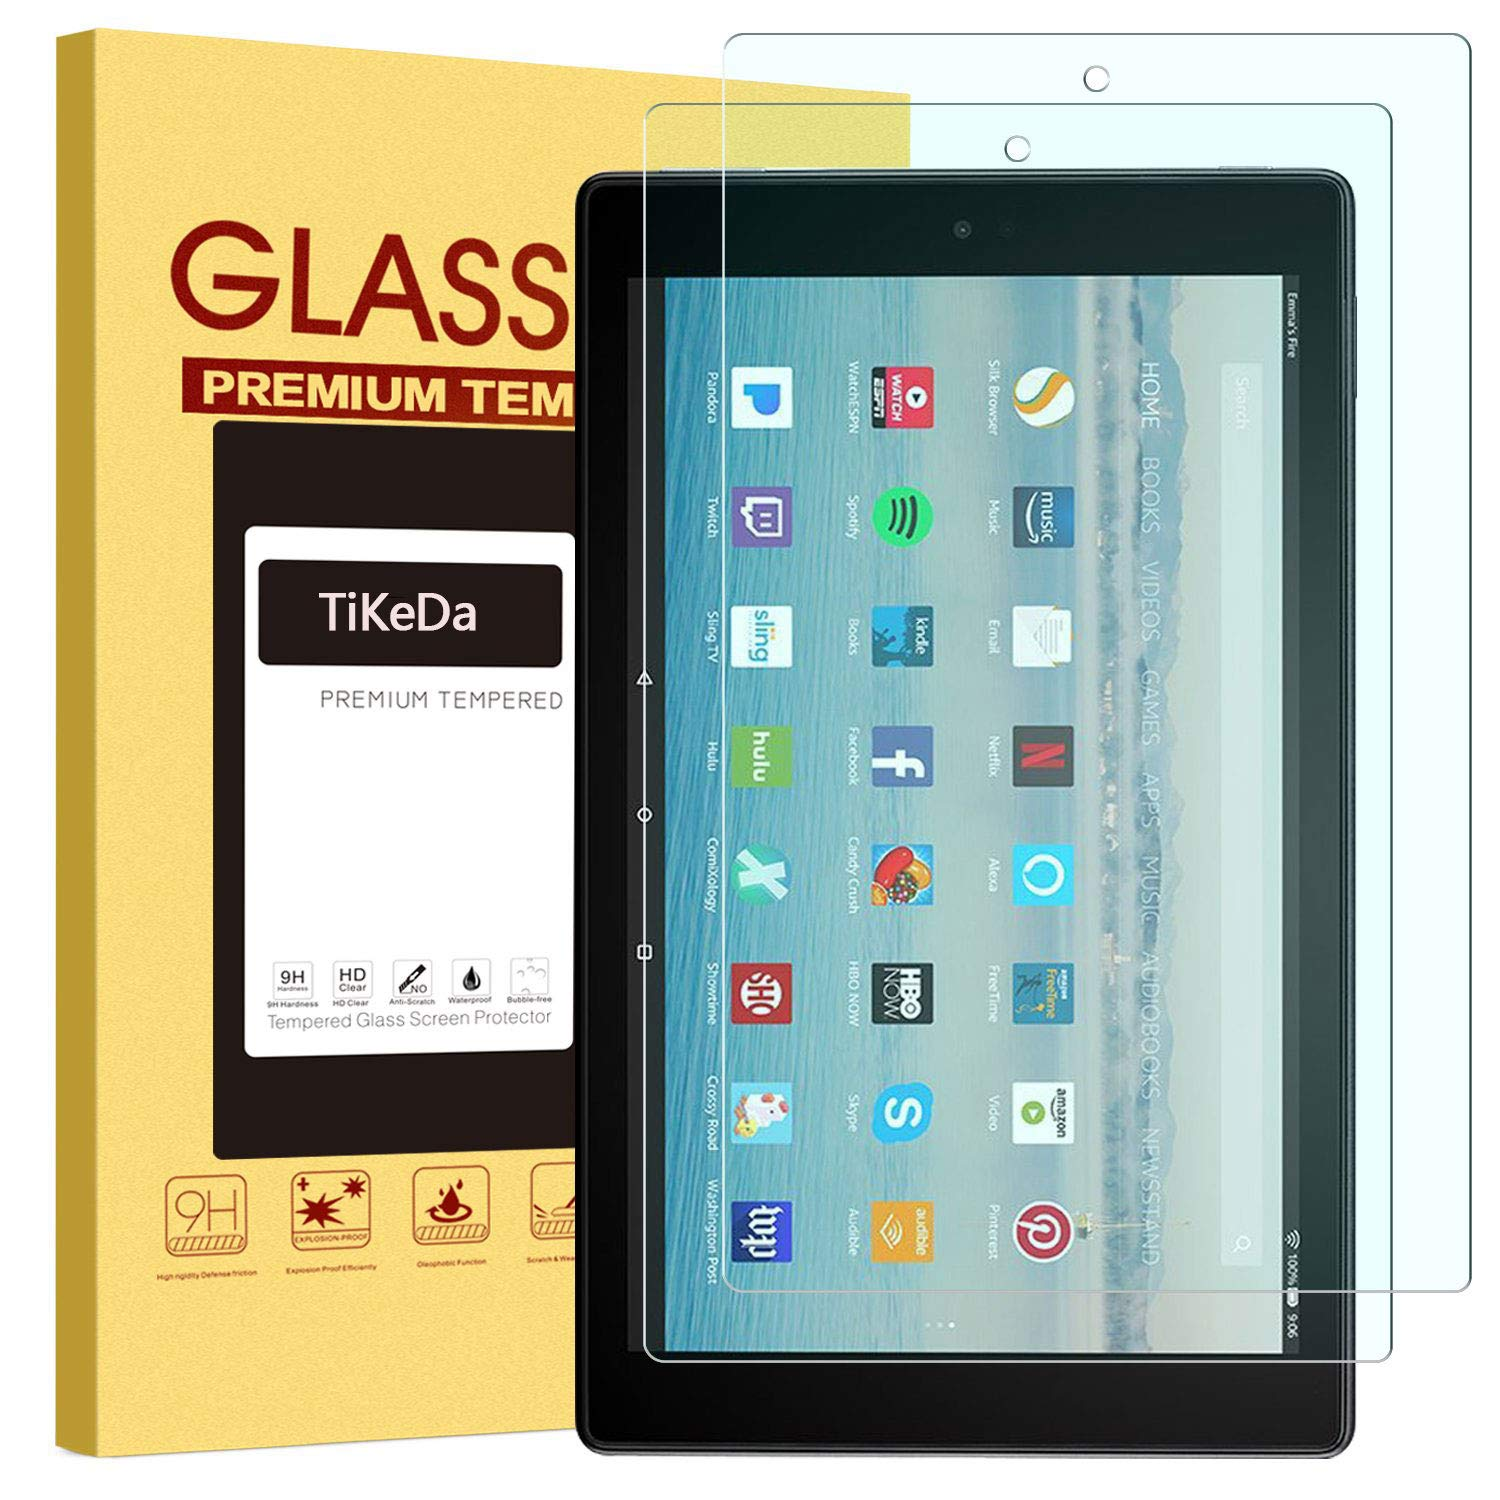 [2 Pack] All-New Fire HD 10 Screen Protector (7th/5th Generation 2017/2015 Release)- Fire HD 10 Kids Edition Hard Glass Screen Protector with Anti-Scratch Anti-Fingerprint